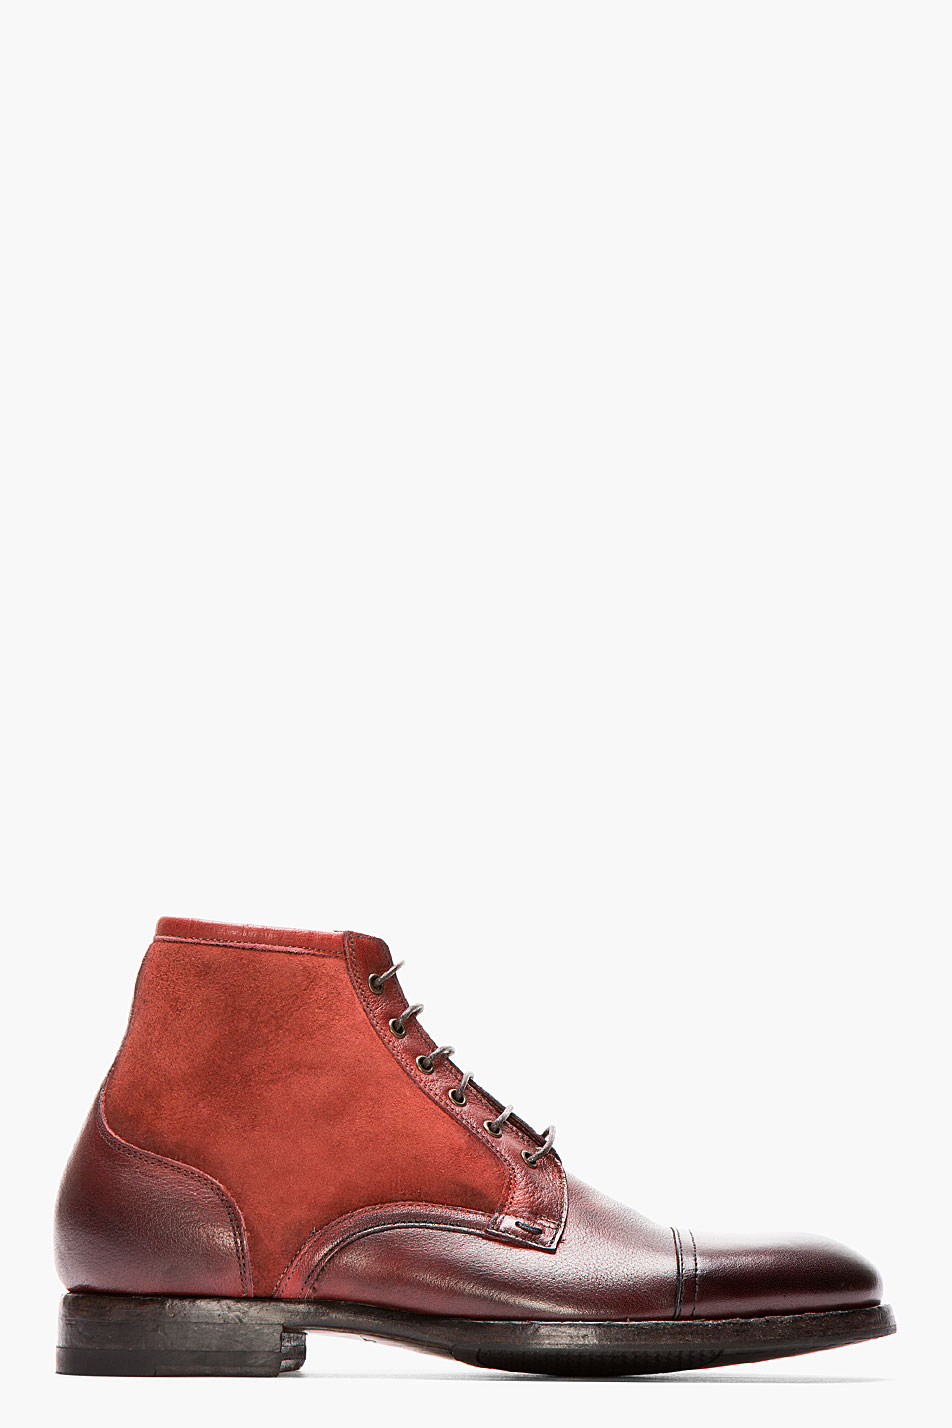 paul smith burgundy dip dyed suede and leather boots in